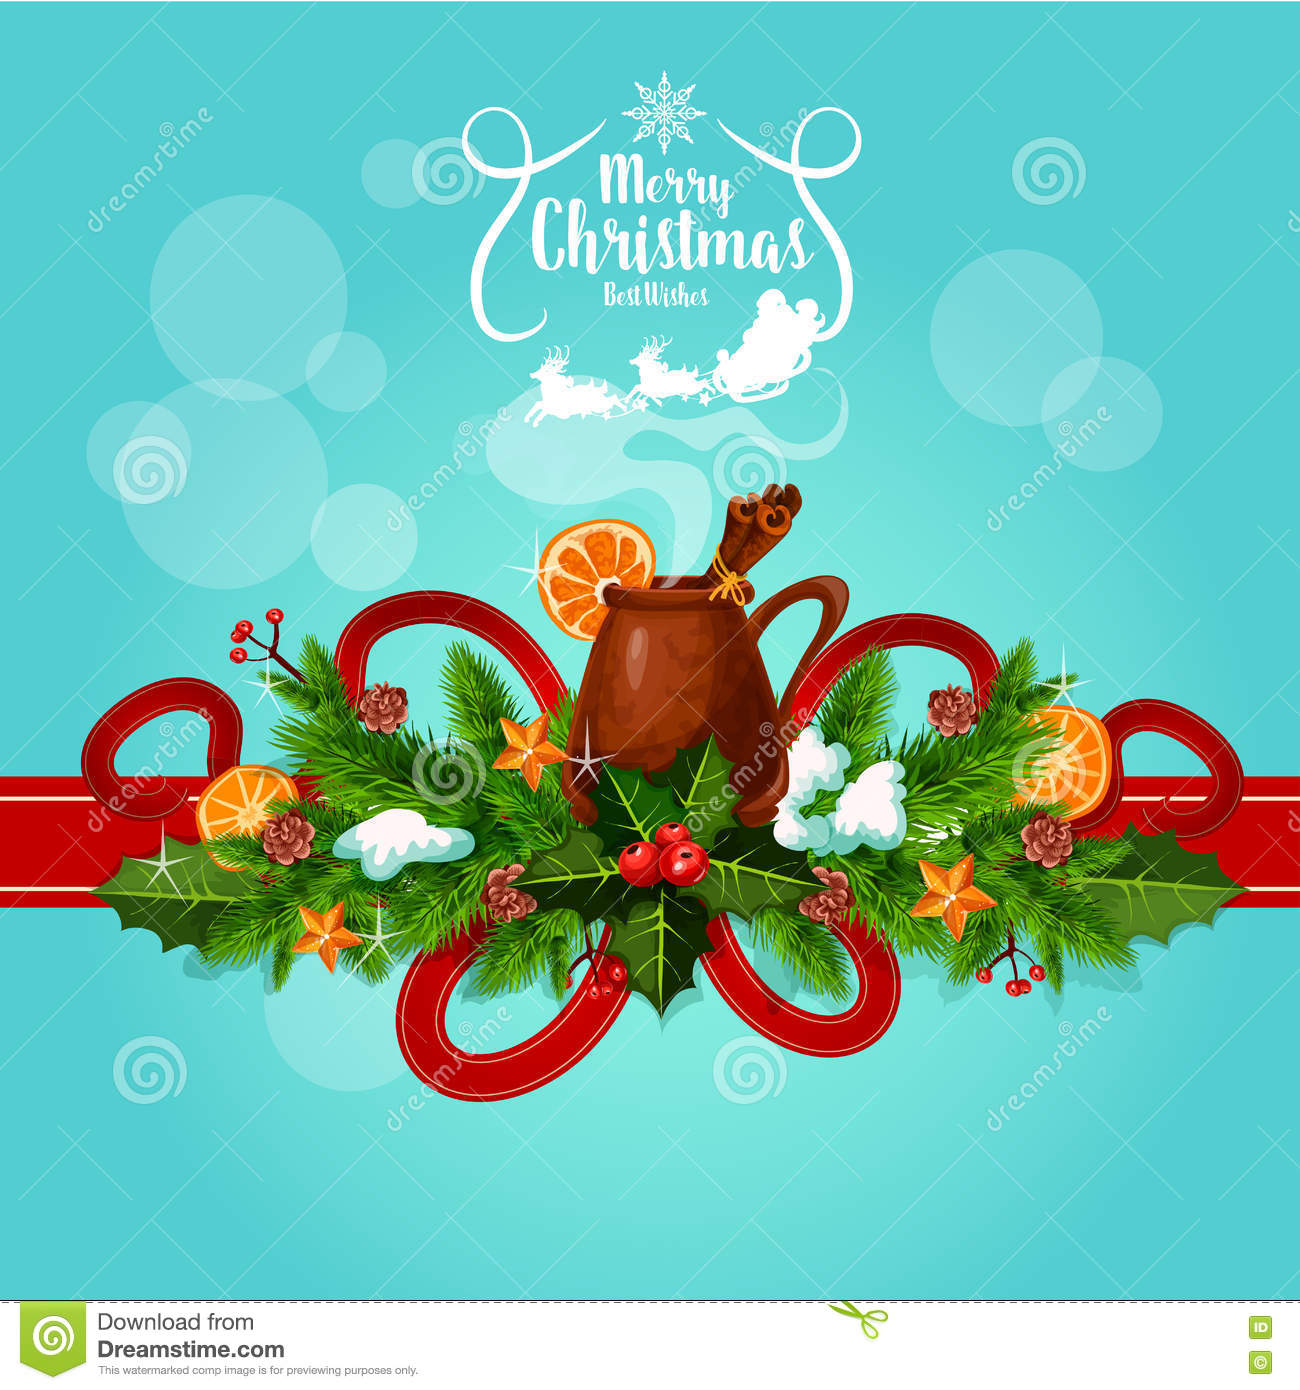 Merry Christmas Best Wishes Mulled Wine Greeting Stock Vector ...